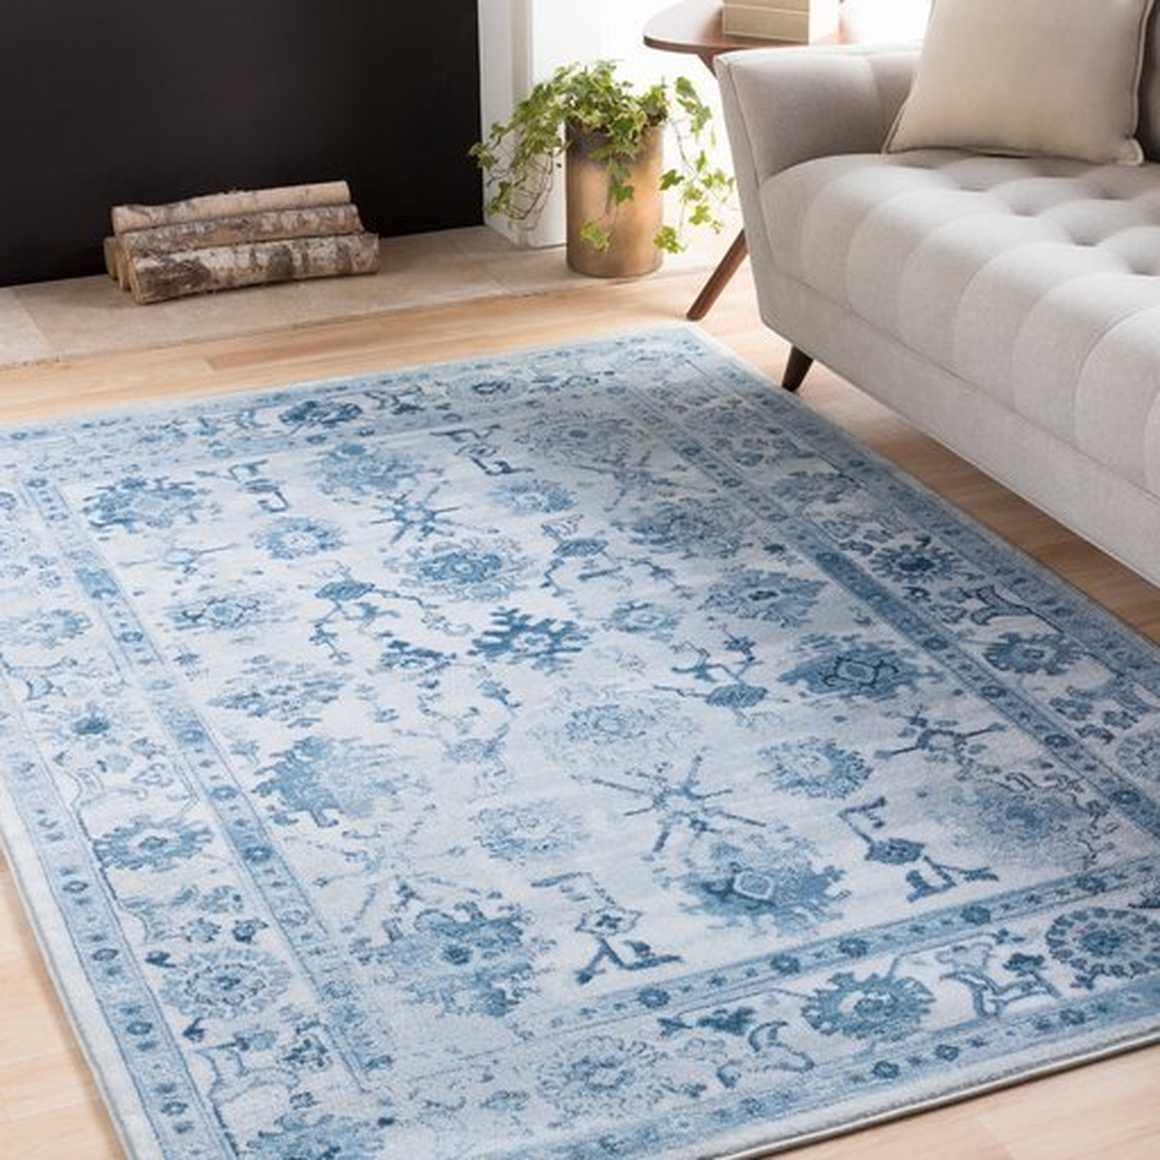 Nova 7 10x10 6 Area Rug By Neva Home Area Rugs Blue Area Rugs Rugs